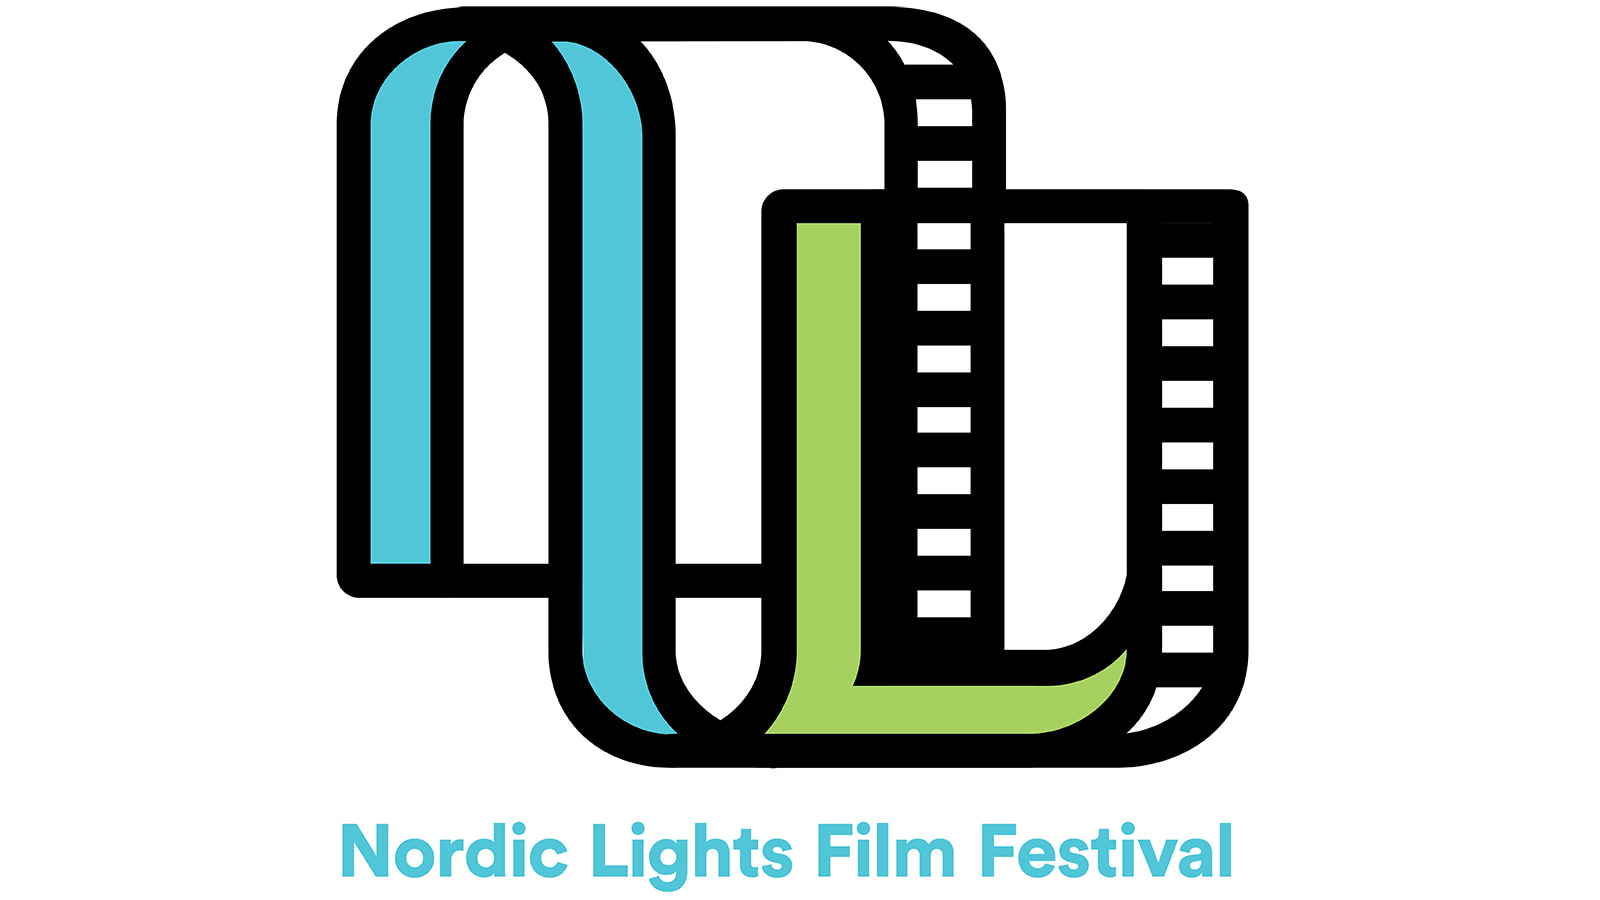 Nordic Lights Film Festival @ SIFF Cinema Uptown